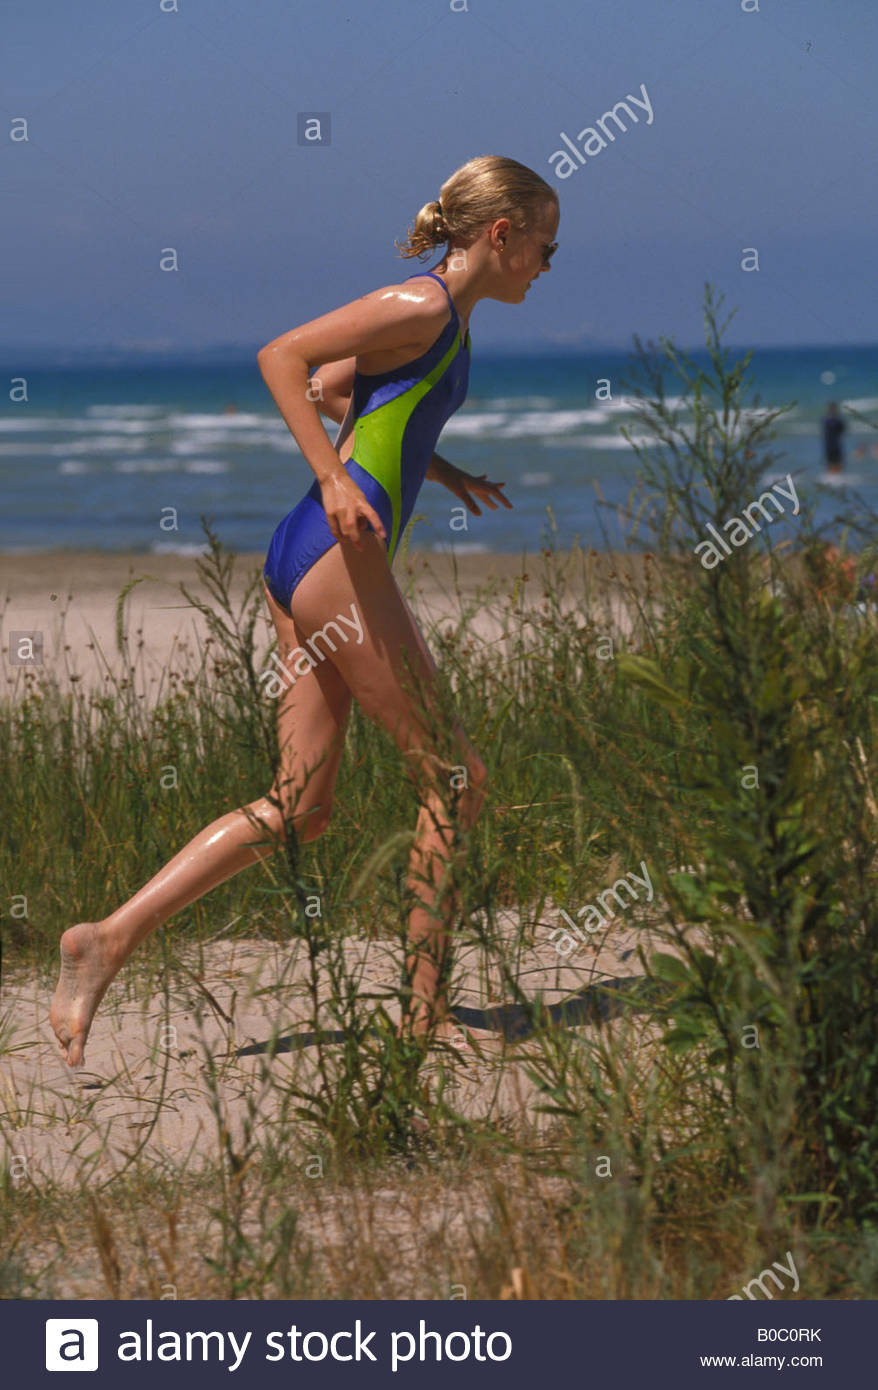 lively-young-teenage-girl-running-on-bea